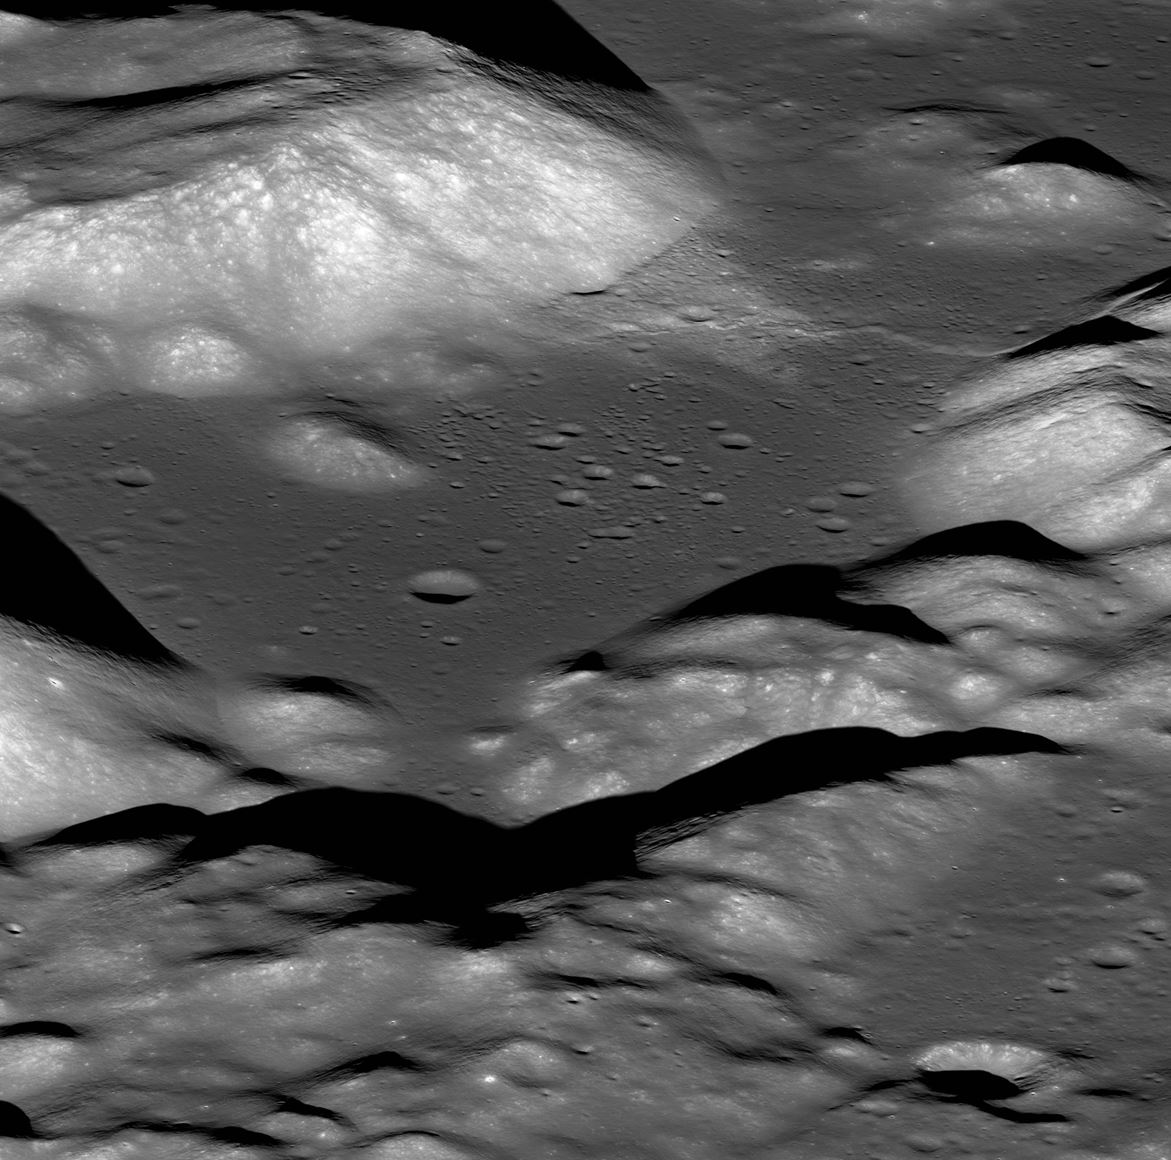 This is a view of the Taurus-Littrow valley taken by NASA's Lunar Reconnaissance Orbiter spacecraft. The valley was explored in 1972 by the Apollo 17 mission astronauts Eugene Cernan and Harrison Schmitt. They had to zig-zag their lunar rover up and over the cliff face of the Lee-Lincoln fault scarp that cuts across this valley. - Image Credits: [NASA/GSFC/Arizona State University - (click to enlarge)